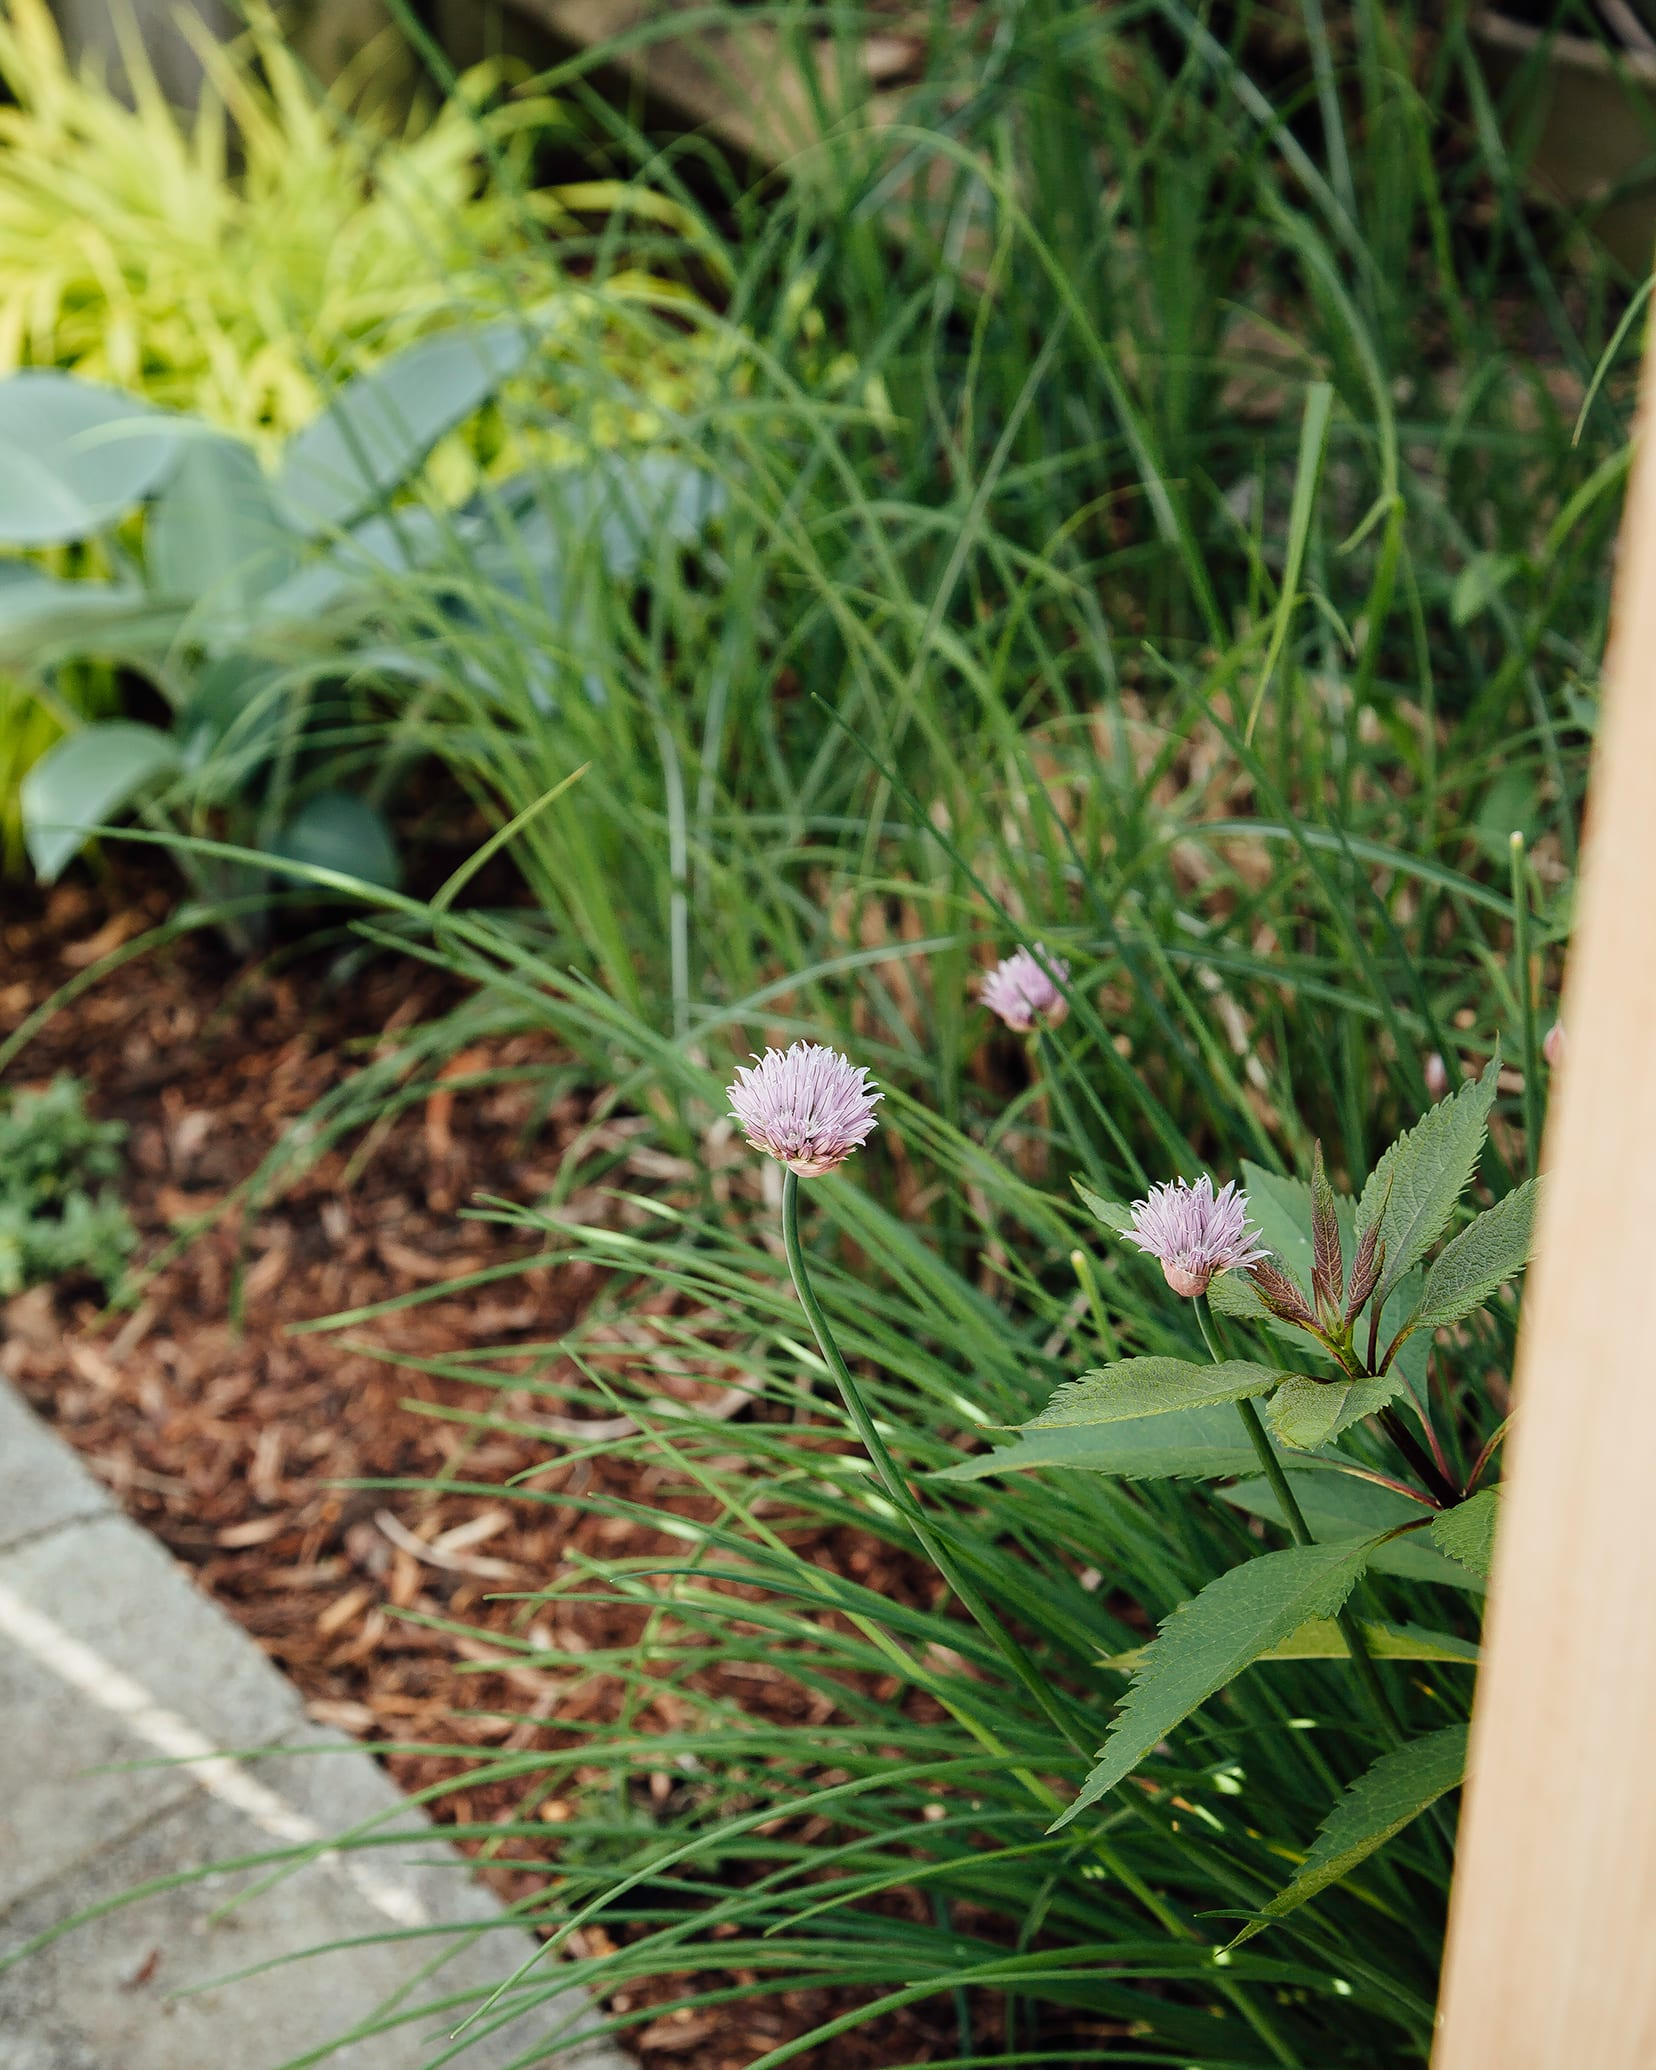 The photo shows chives and chive flowers growing in a garden.